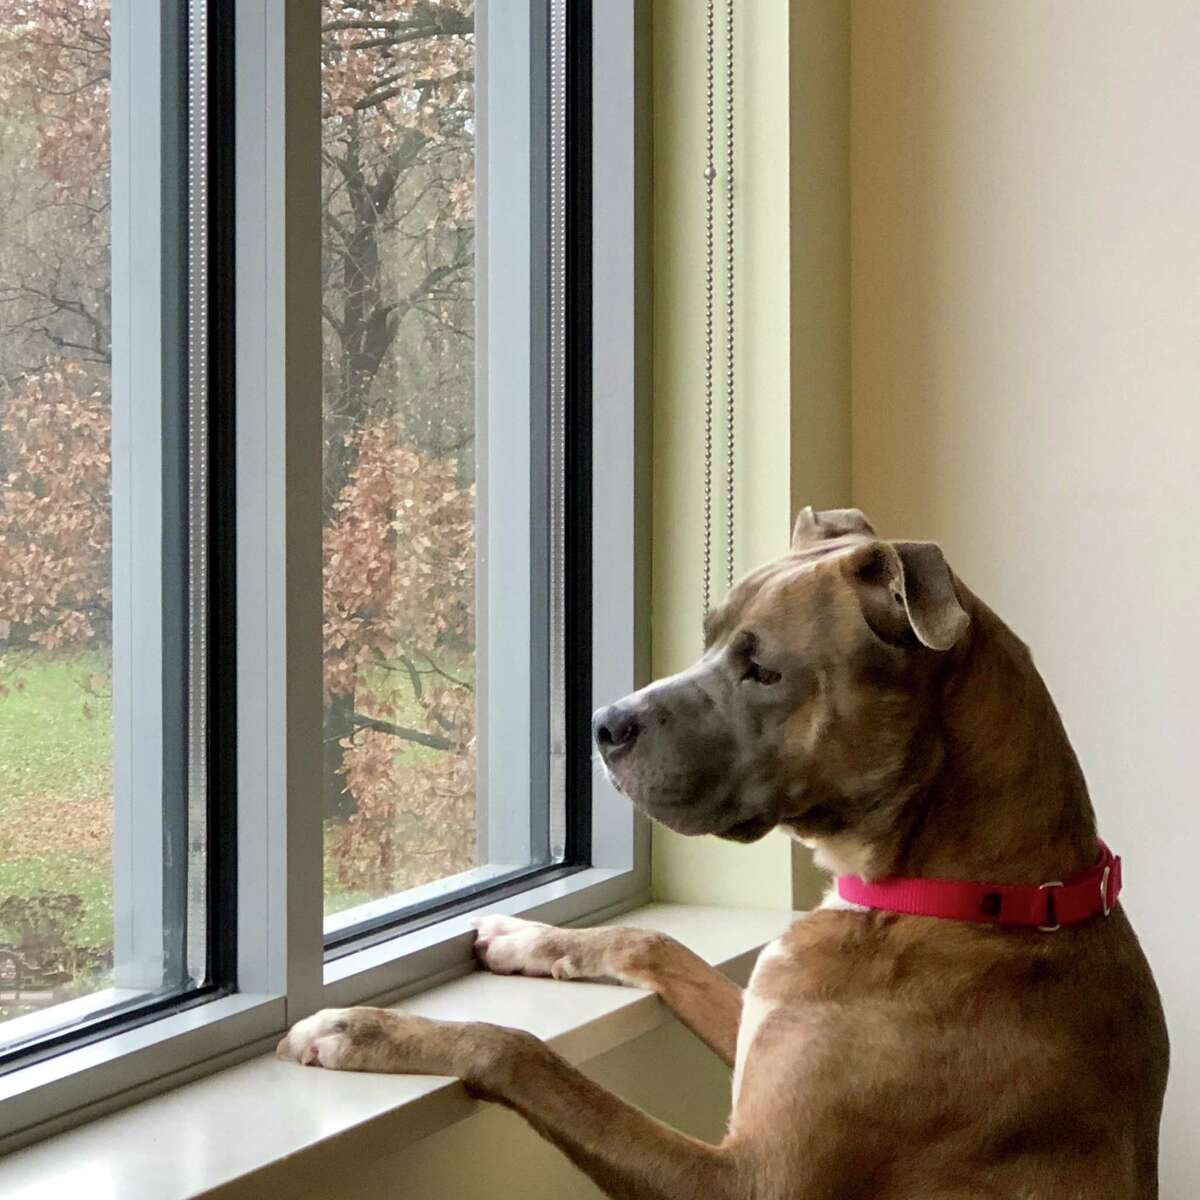 Luna, a Troy dog which the Mohawk Hudson Humane Society is trying to save after it was scheduled to be euthanized after an apparent biting incident, is pictured at the shelter in Menands, N.Y.